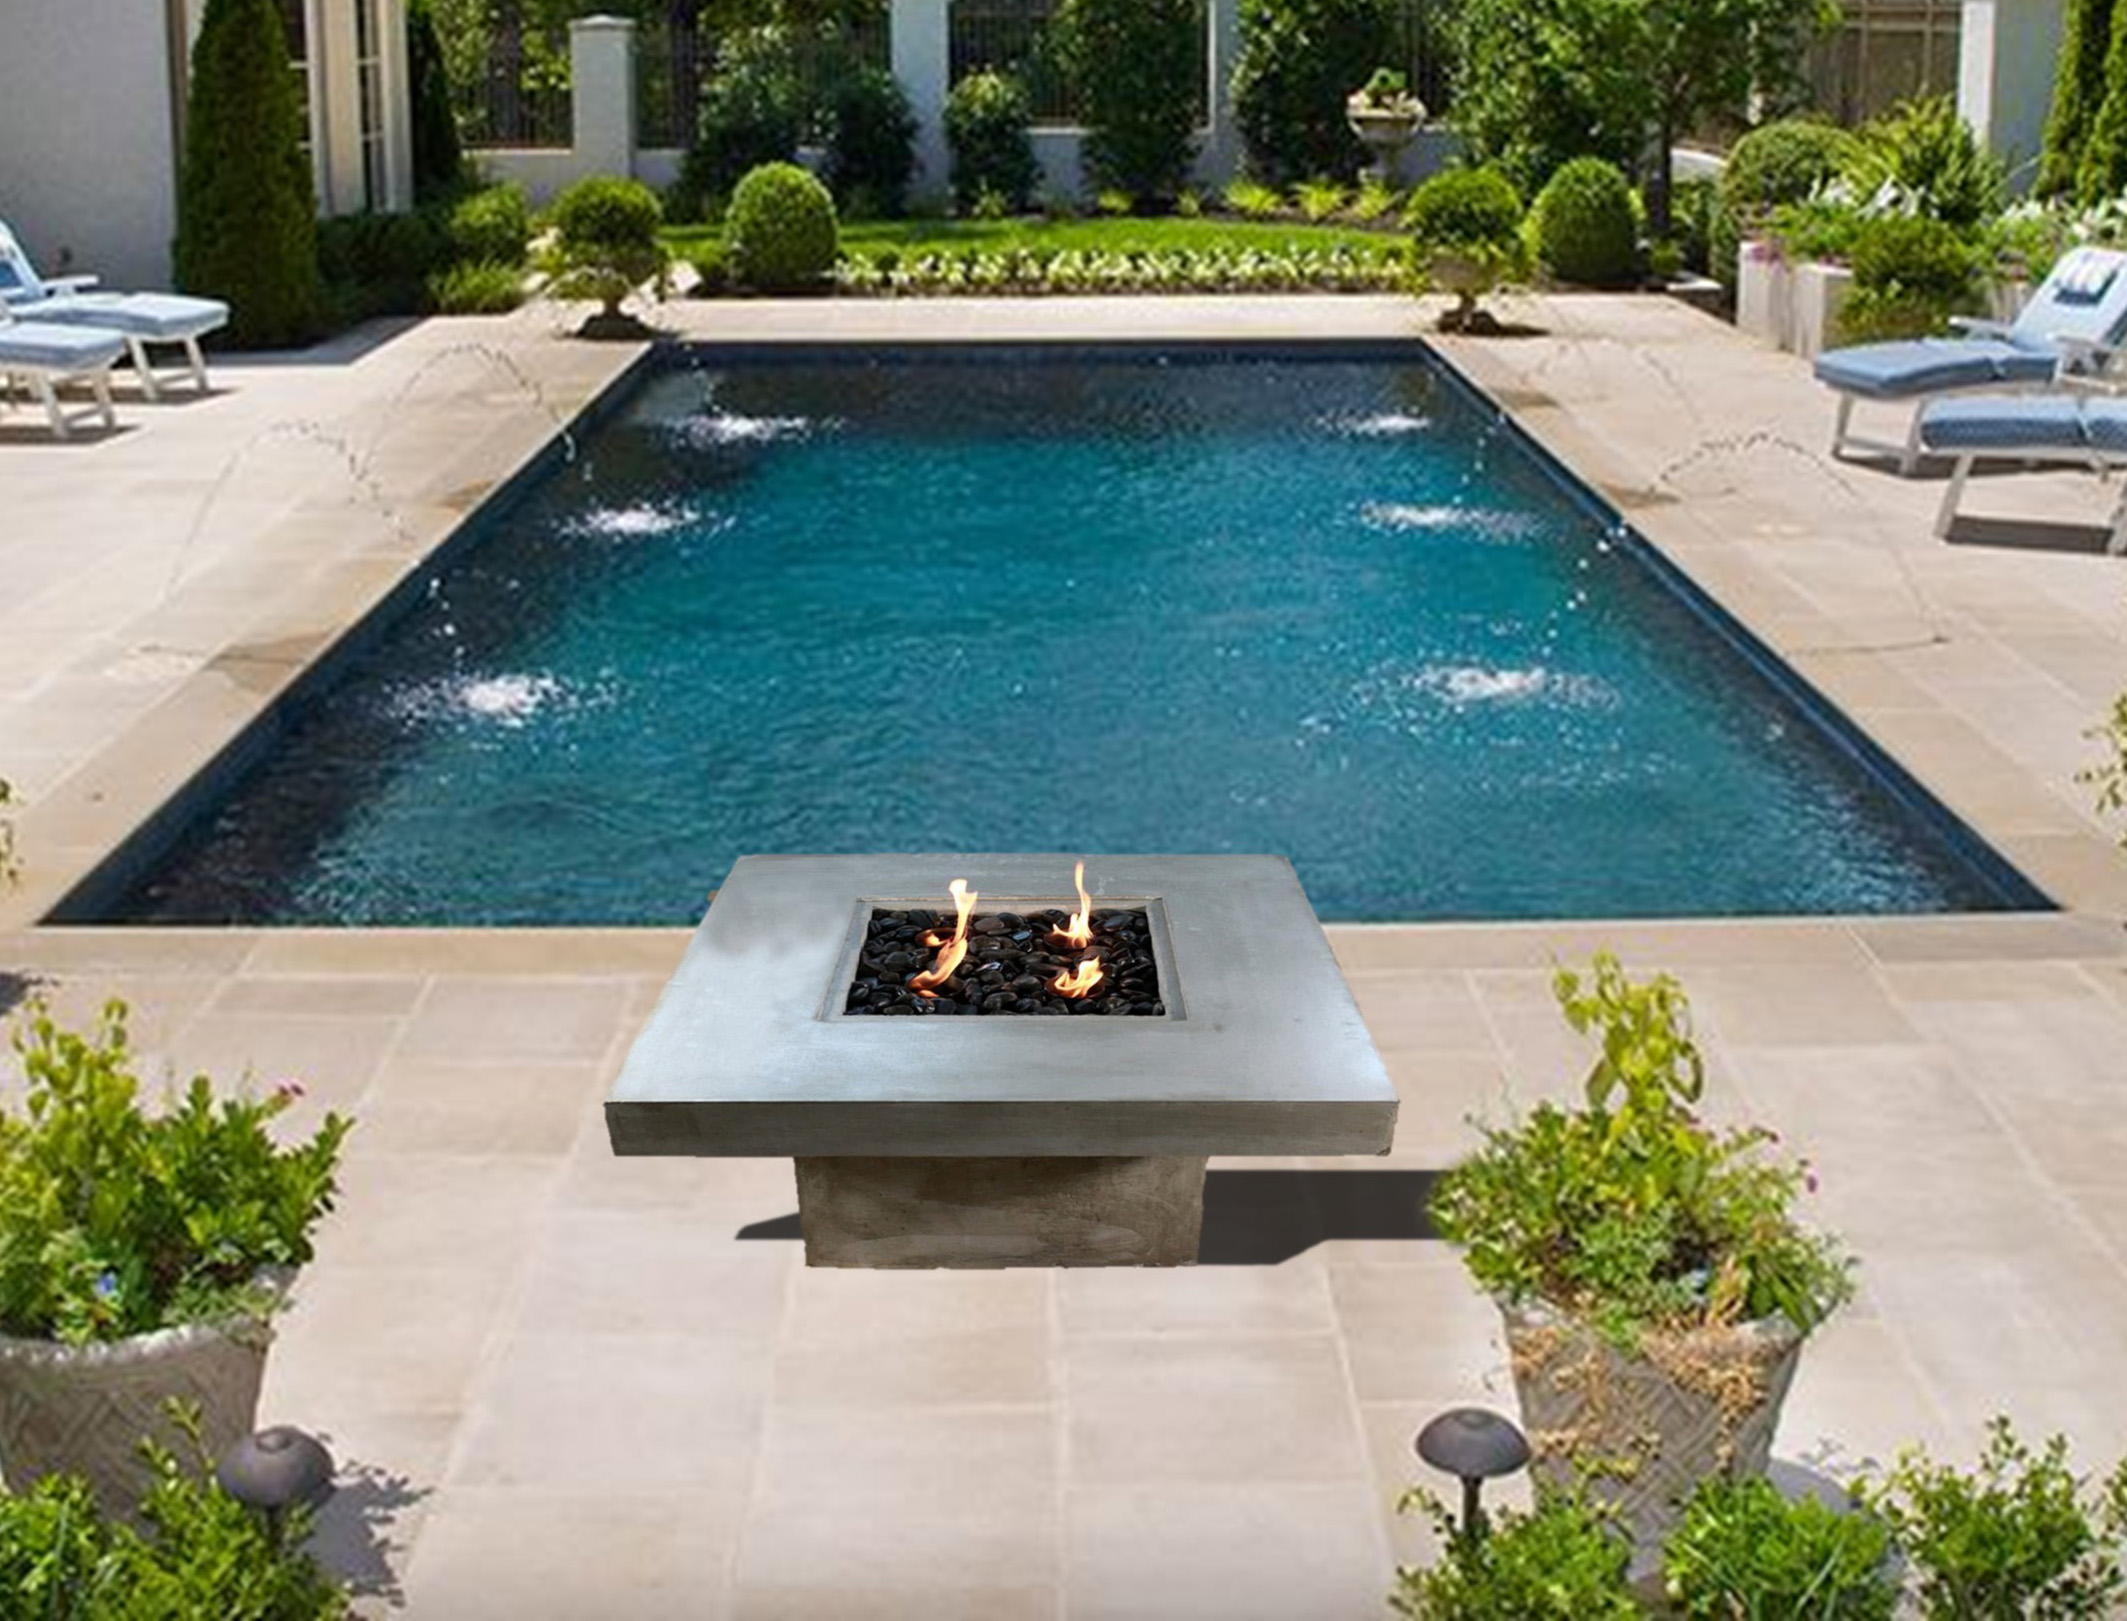 680 22 B 7 Low Voltage Gas Fired Luminaires Decorative Fireplaces Fire Pits And Similar Equipment